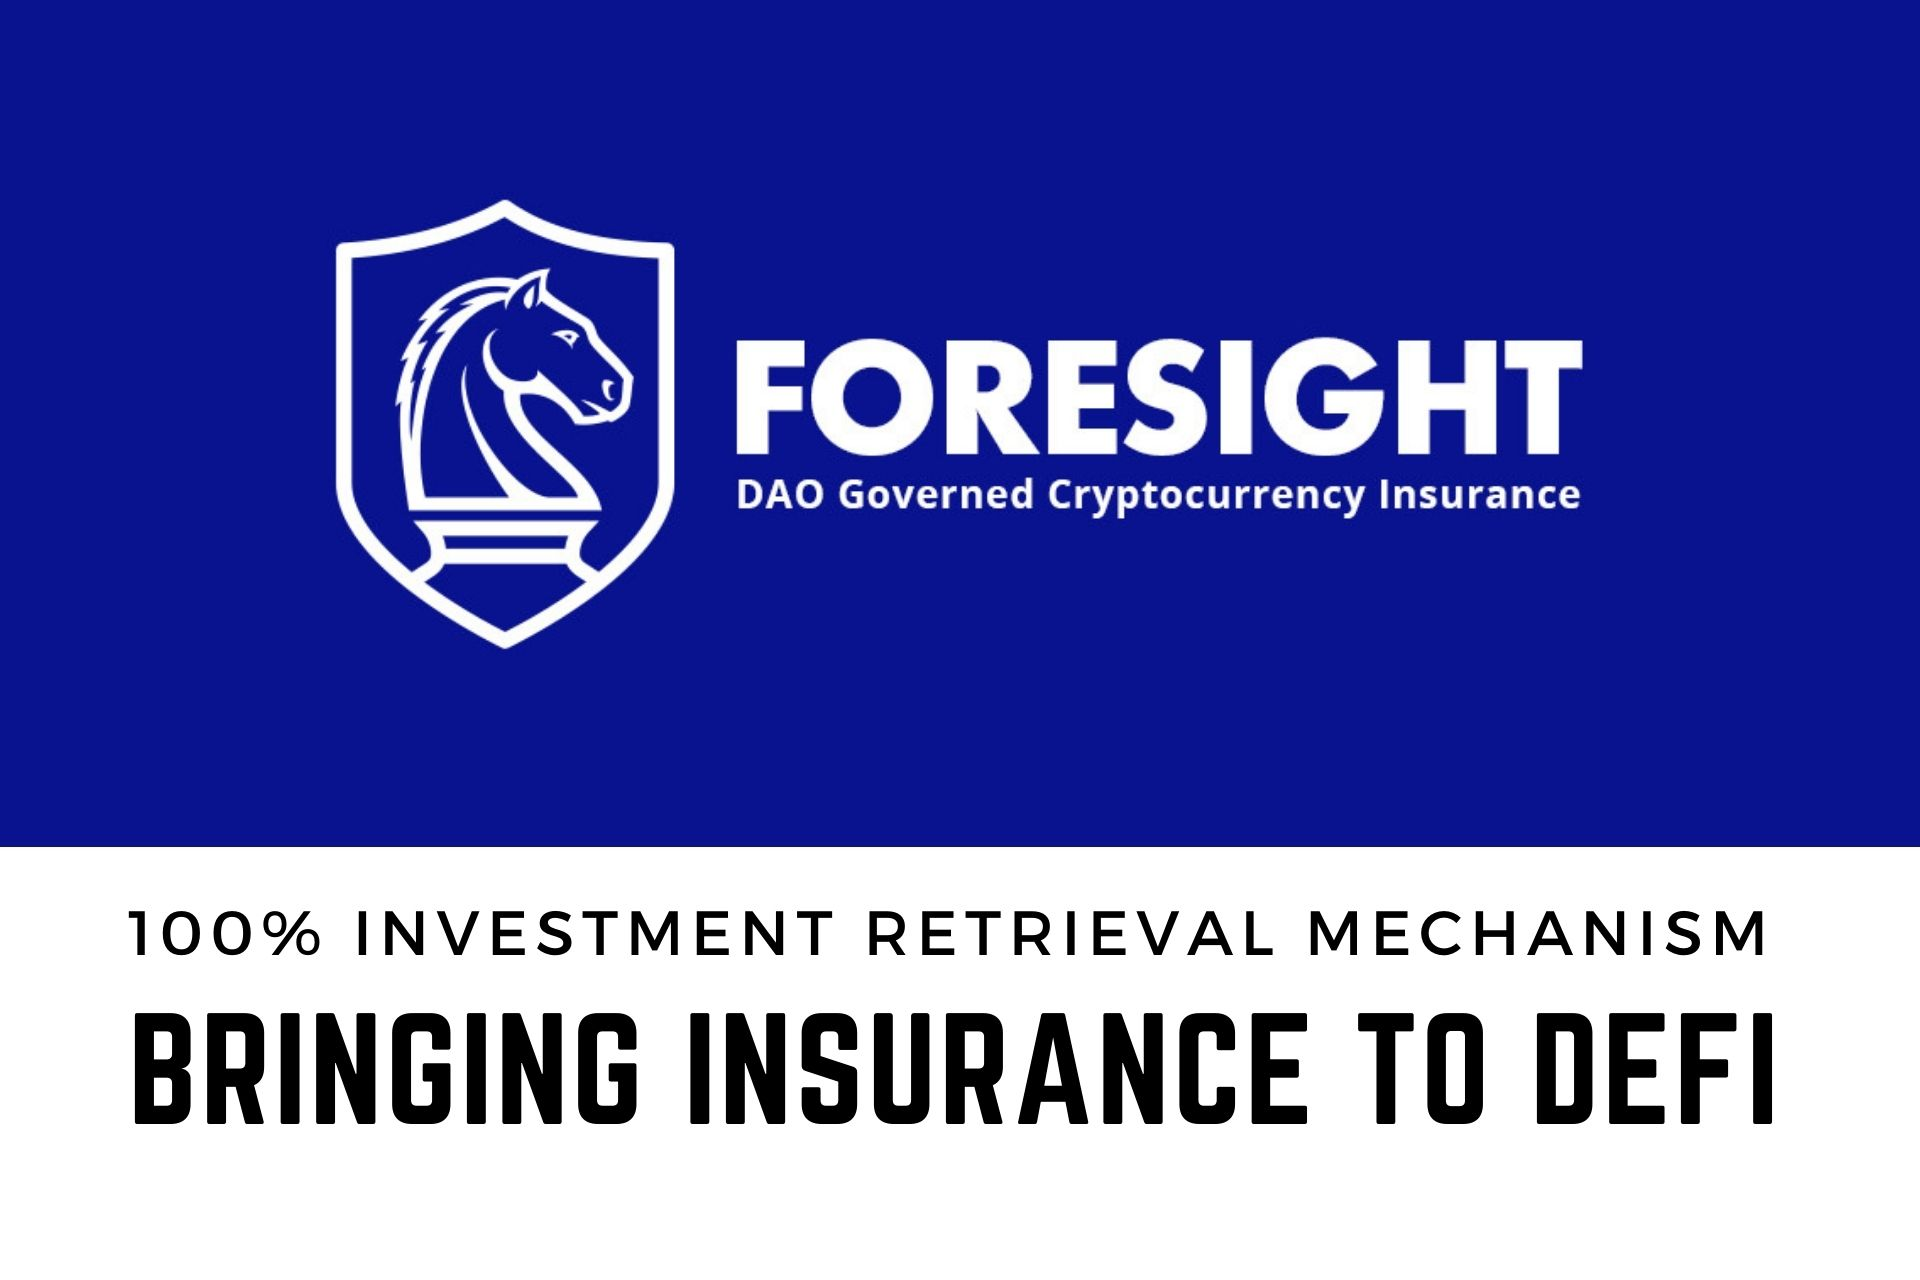 100% Investment Retrieval Mechanism with Foresight Insurance